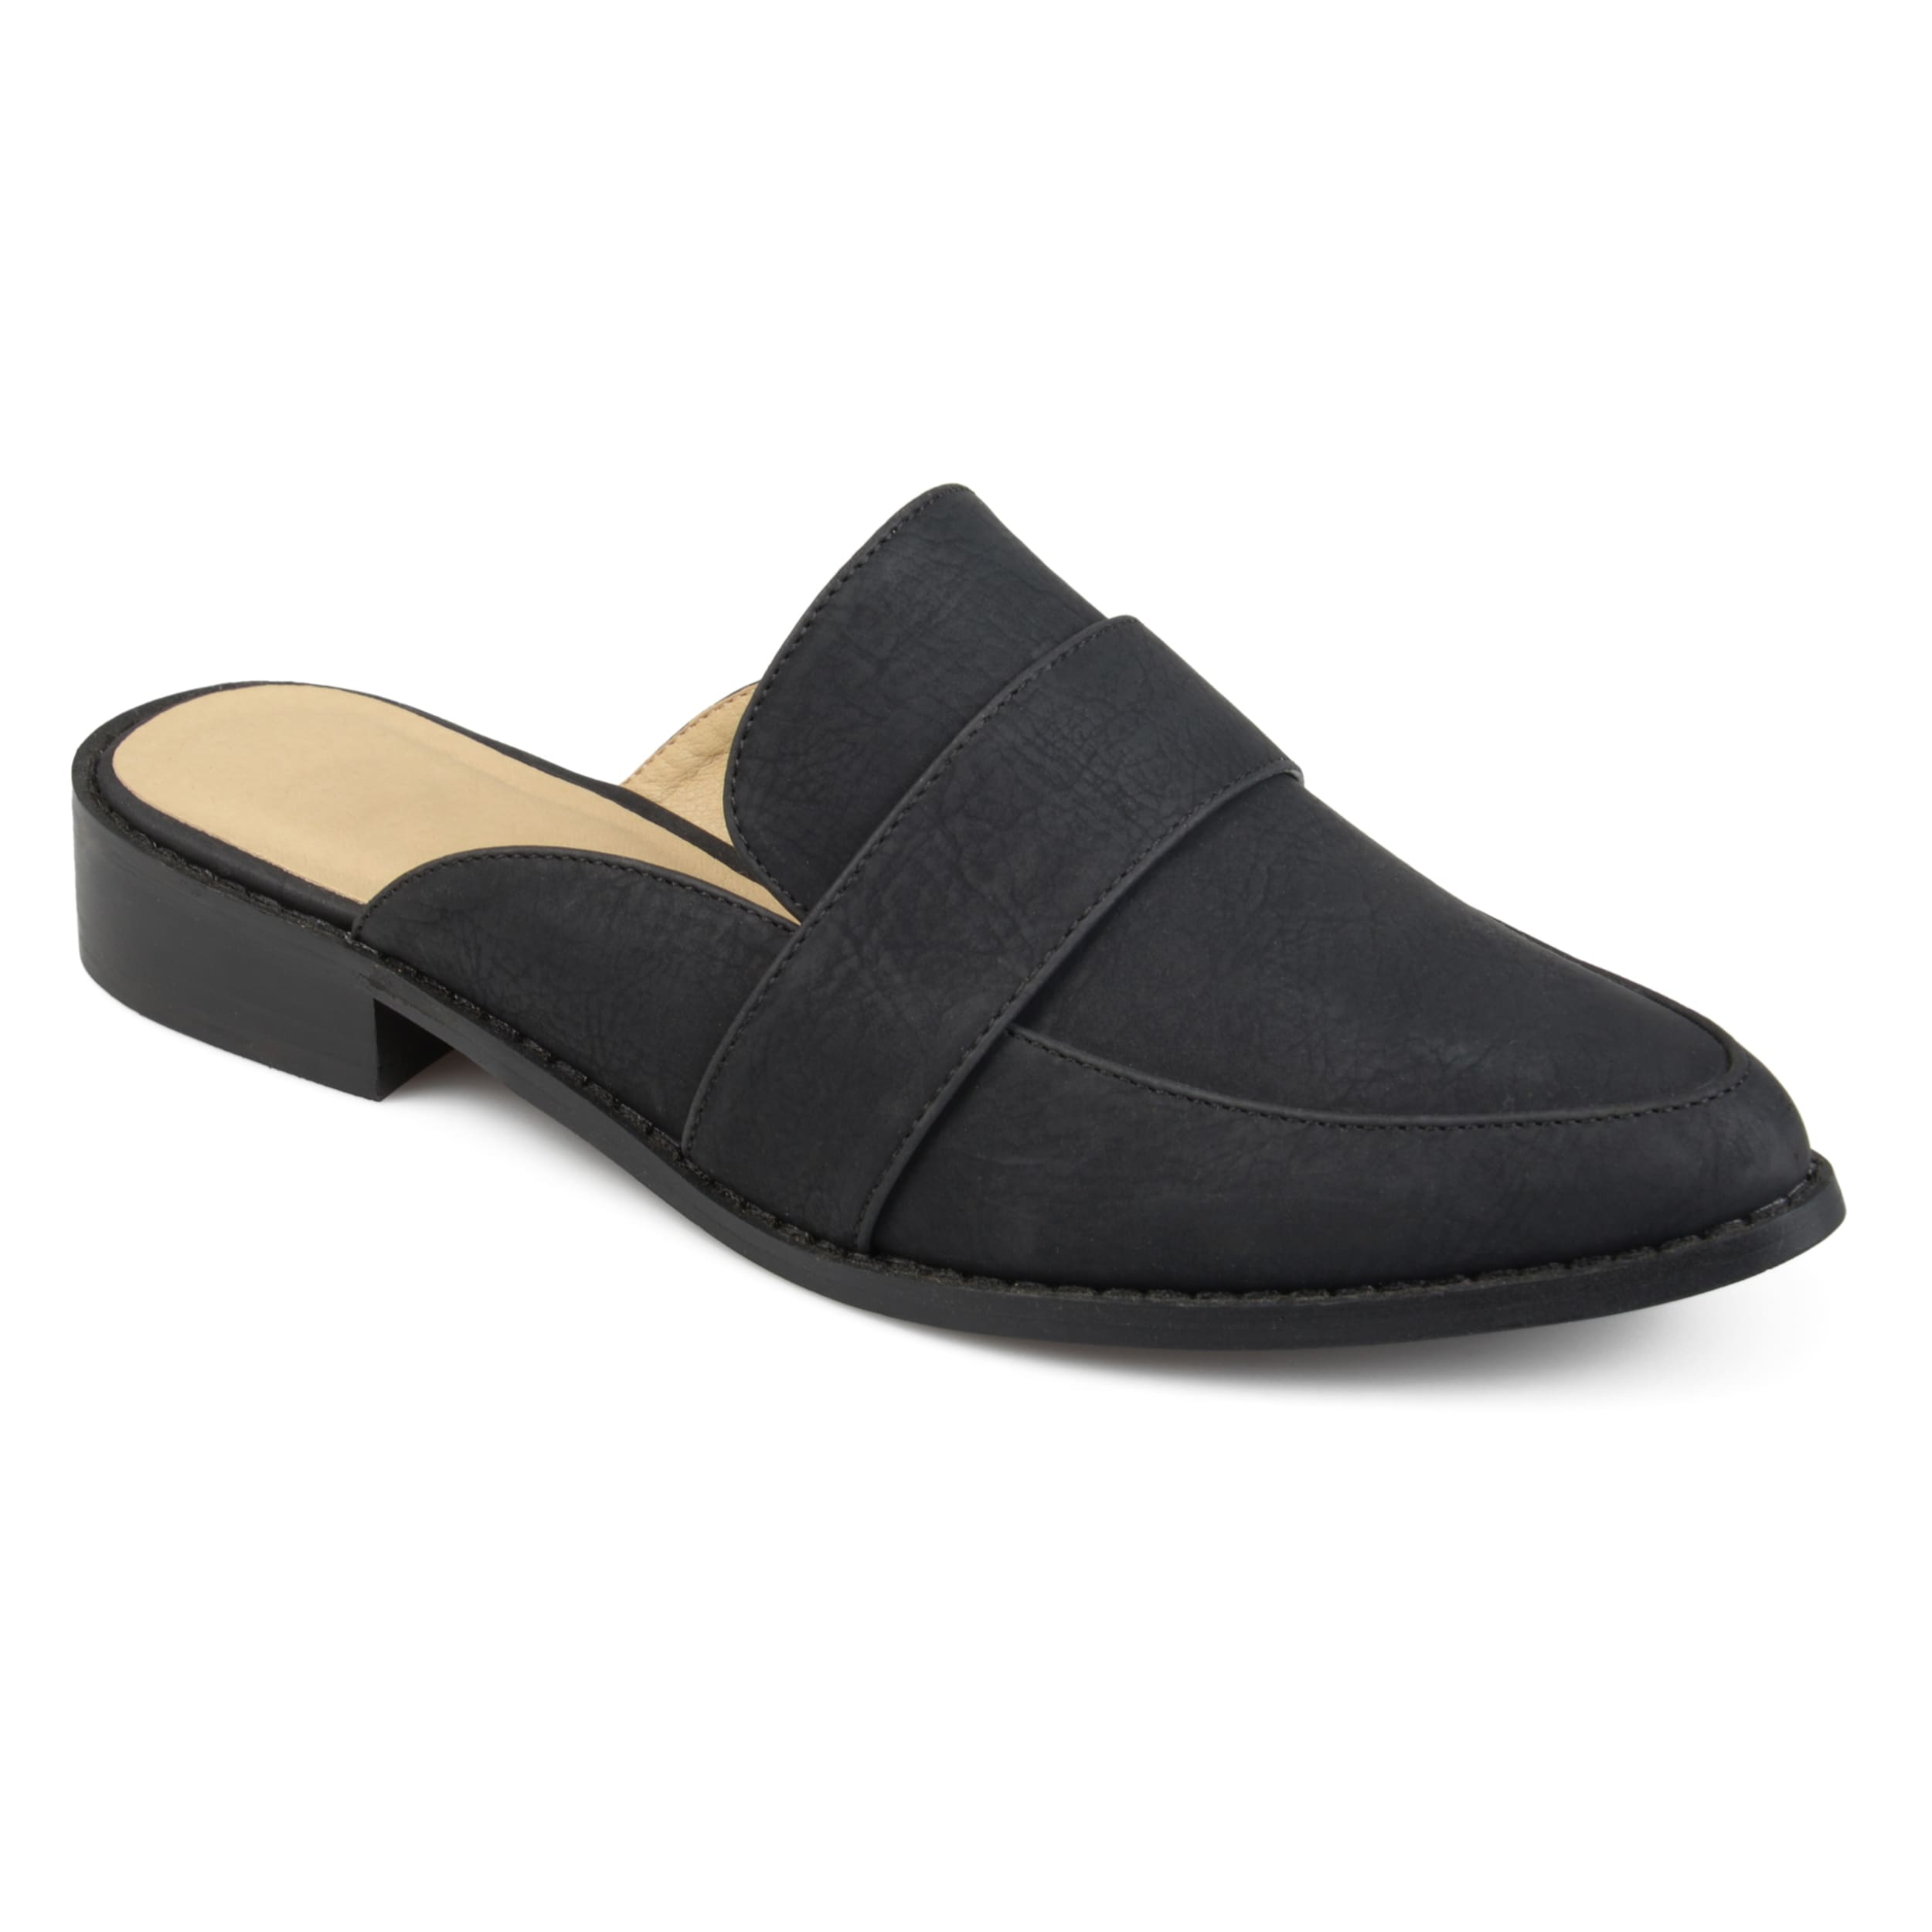 7ef904c91229 Shop Journee Collection Women s  Keely  Almond Toe Slip-on Mules - Free  Shipping On Orders Over  45 - Overstock - 16816920